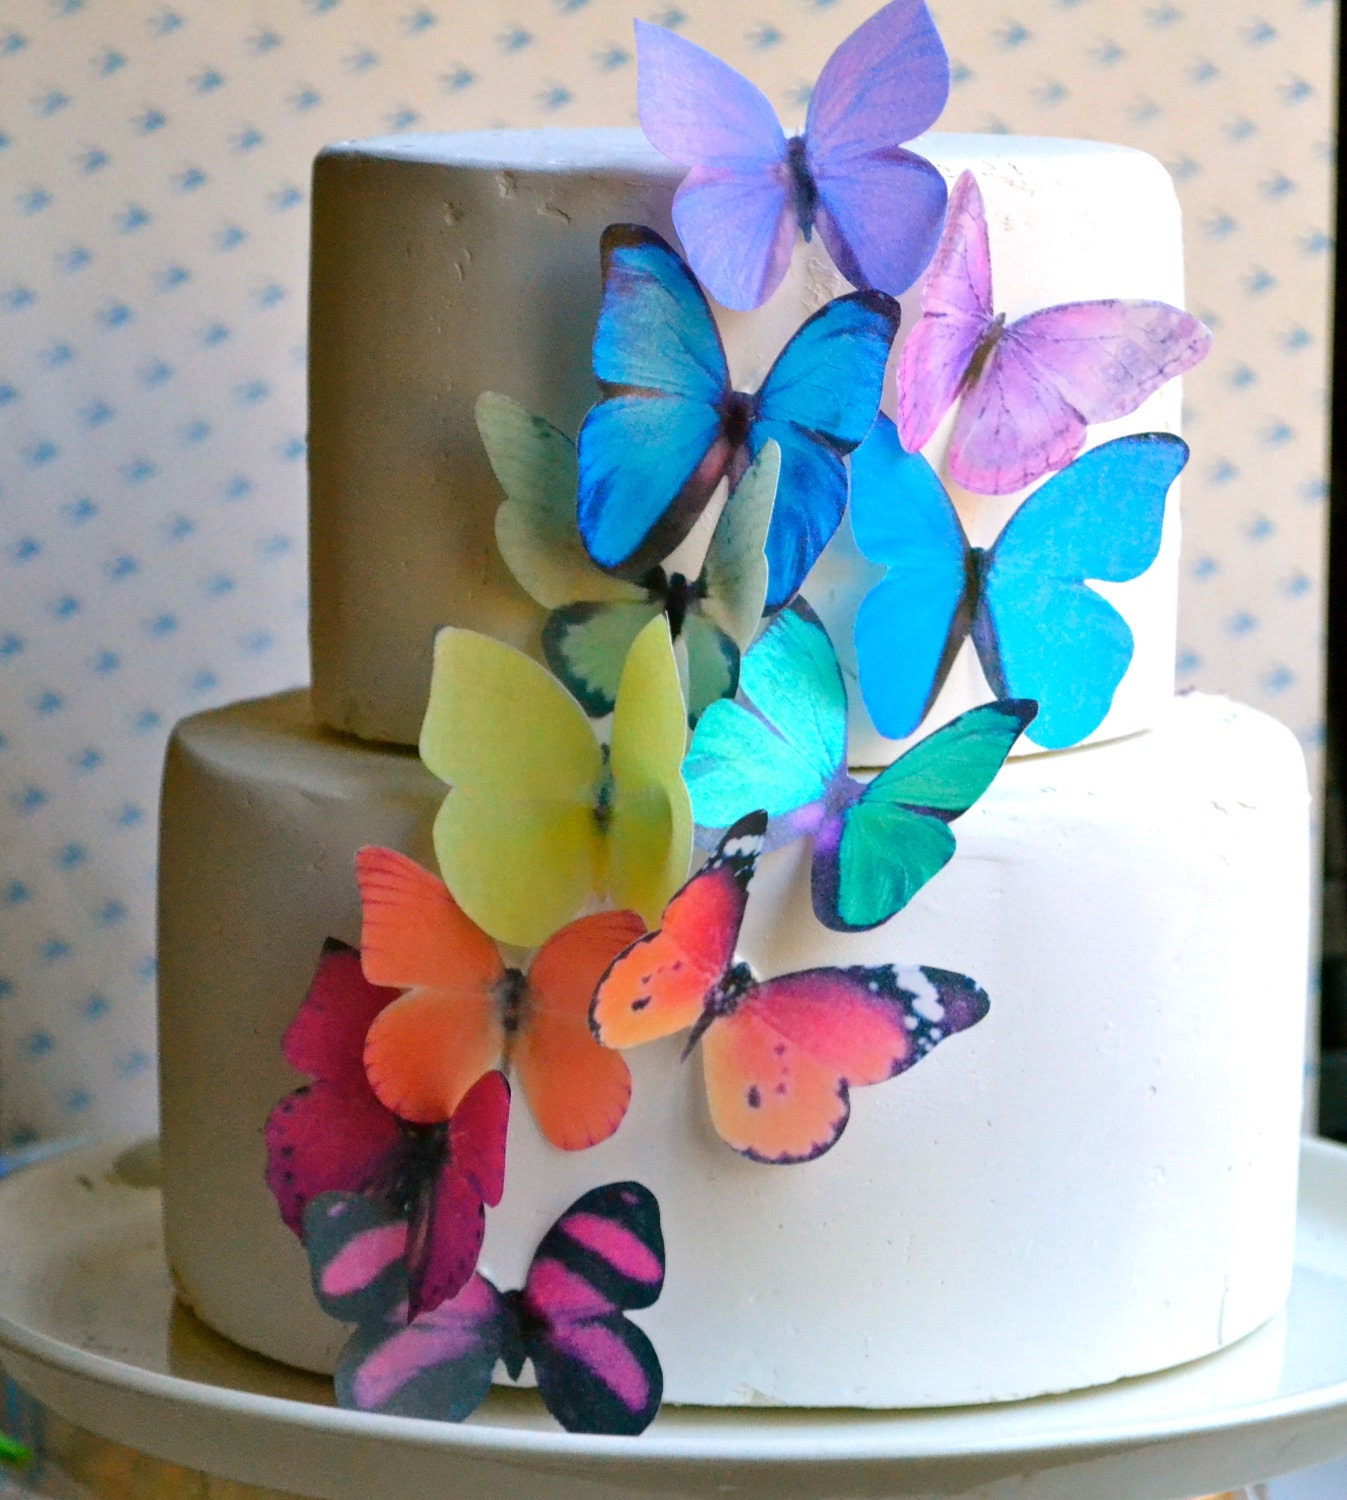 image edible paper wafer butterflies butterfly cake decoration sugar robot